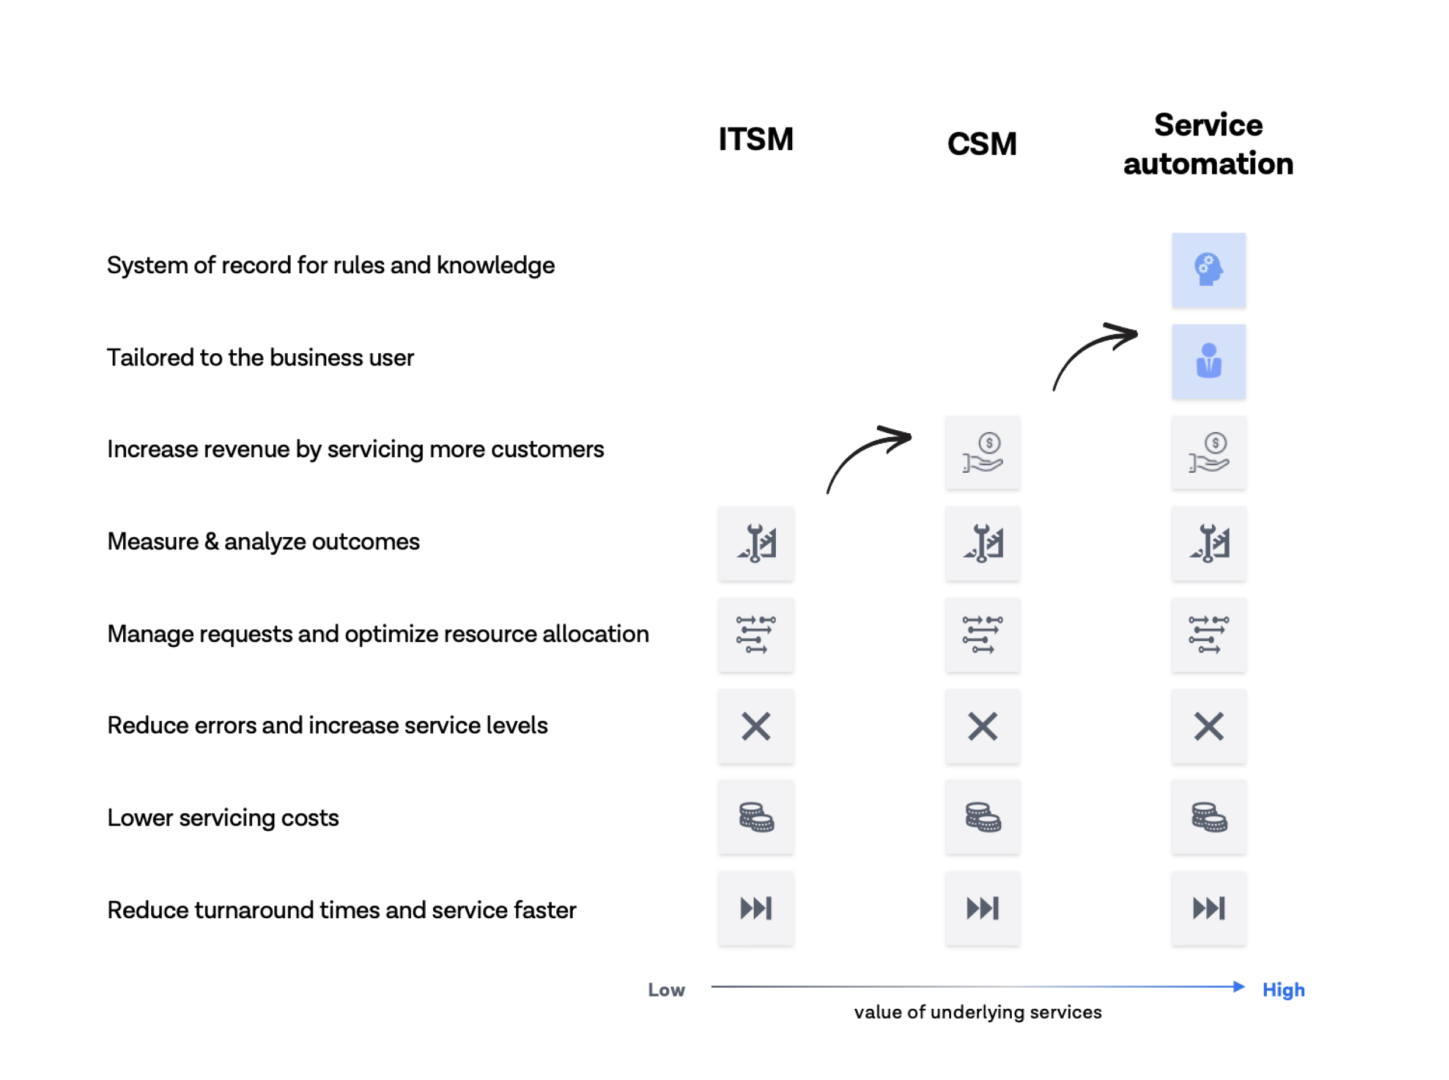 Service automation offers the same and more benefits tohigh-valueteams